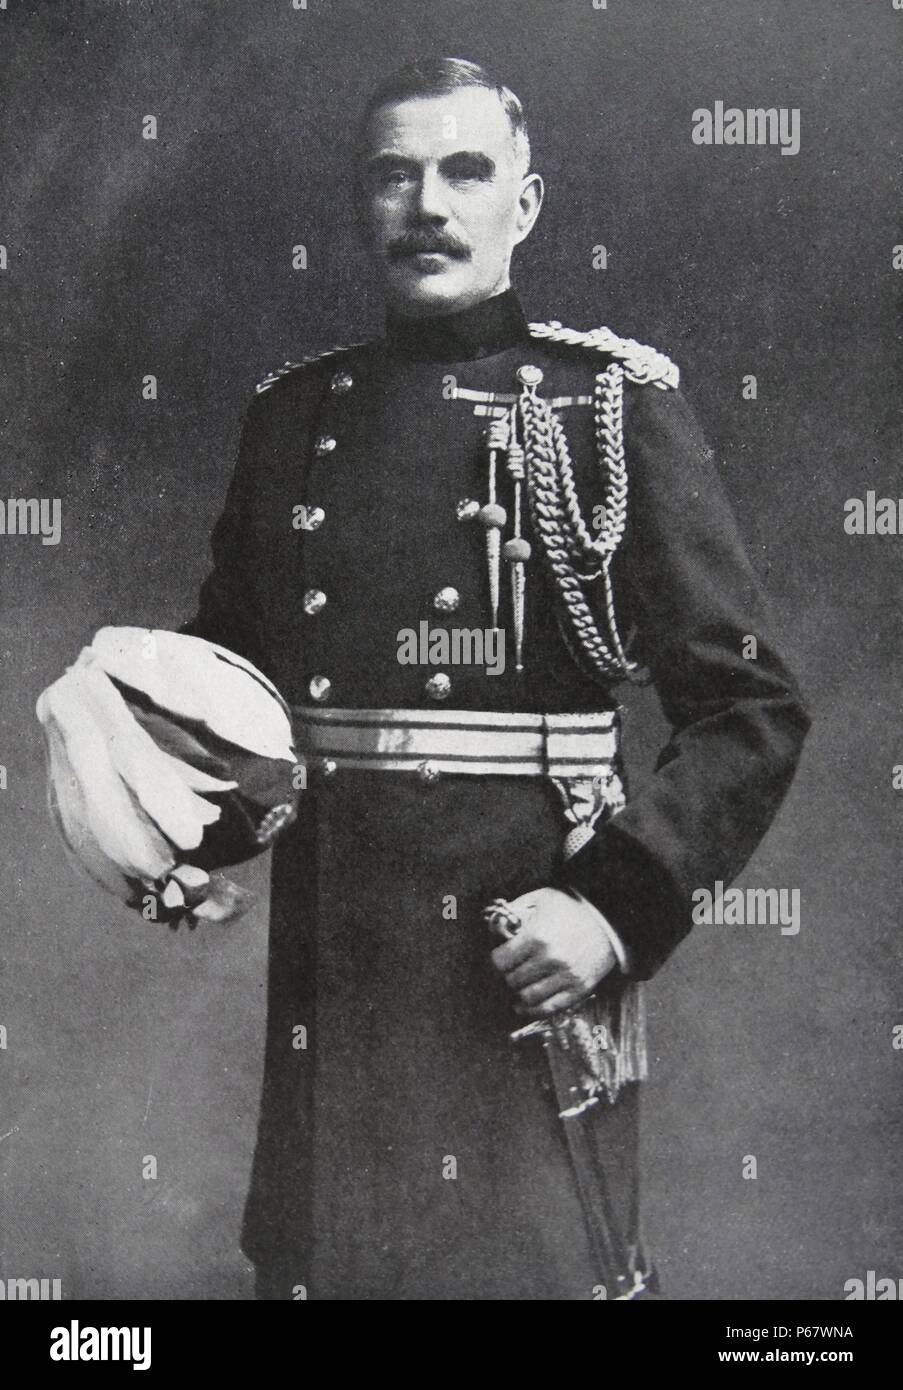 Field Marshal Sir William Robert Robertson, (29 January 1860 – 12 February 1933). British Army officer who served as Chief of the Imperial General Staff, from 1916 to 1918, during the First World War. Stock Photo